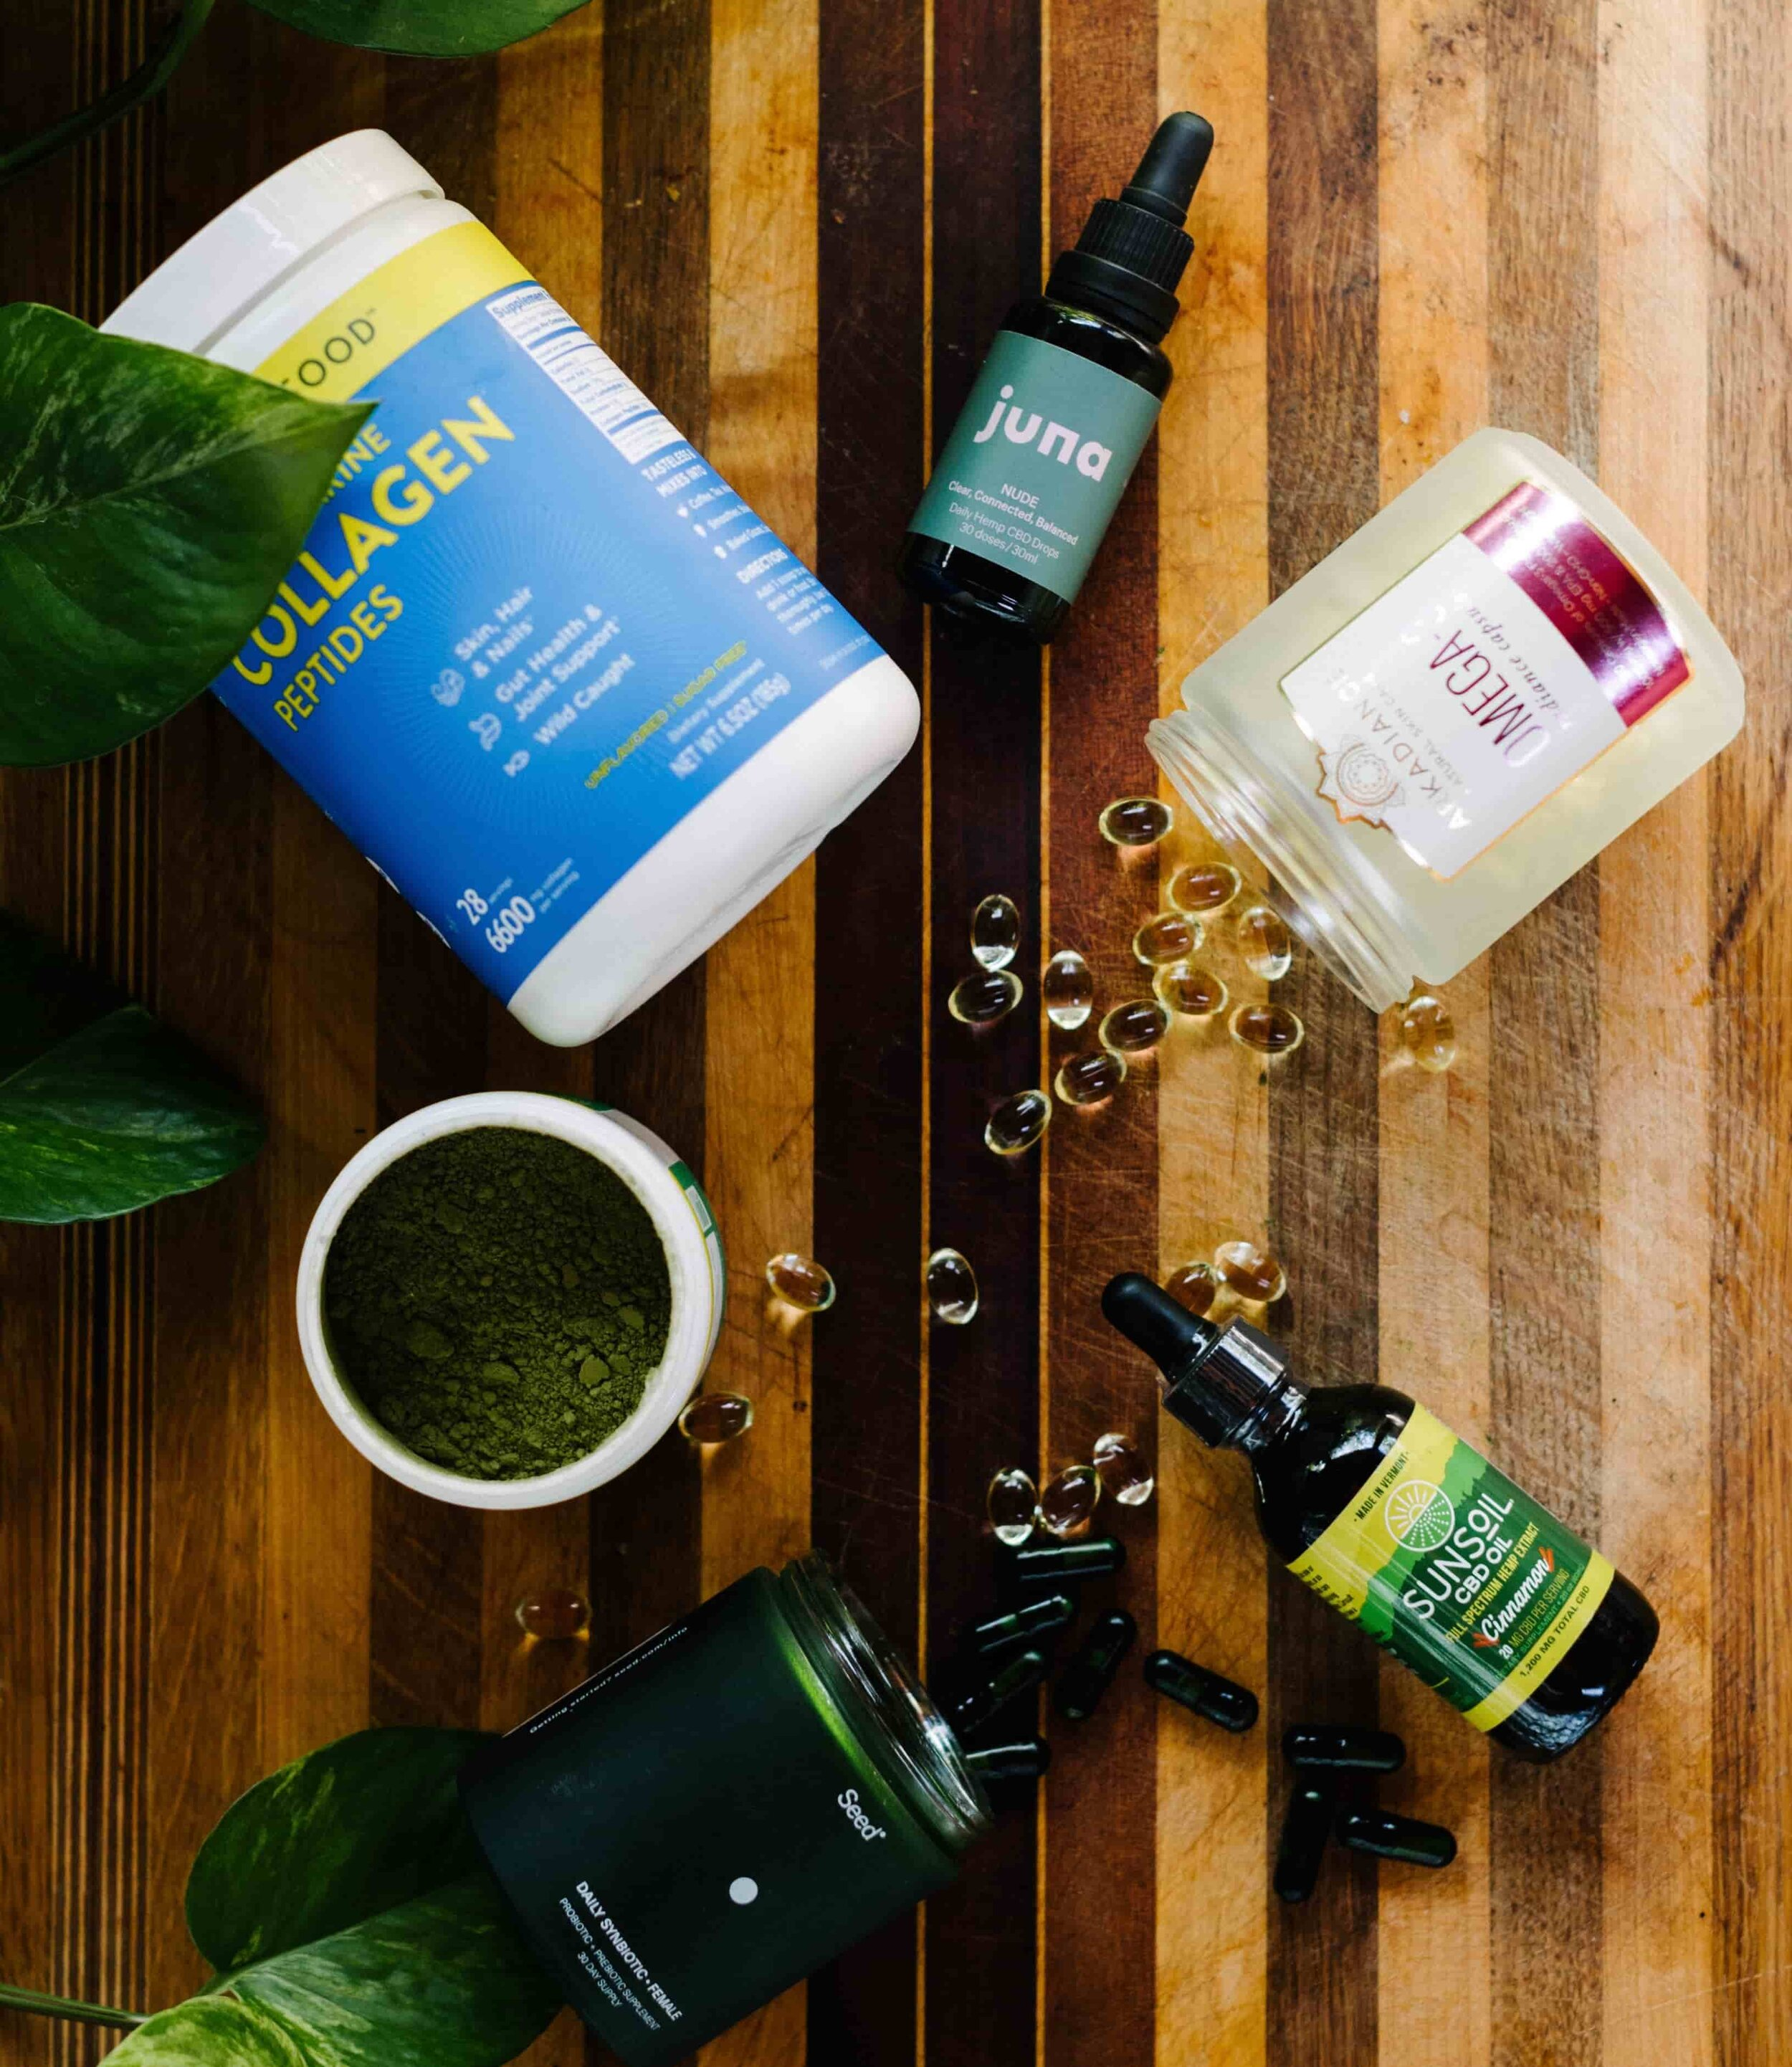 Eco-friendly and sustainable supplements from www.goingzerowaste.com #supplements #sustainable #zerowaste #ecofriendly #vitamins #heatlh #wellness #adaptogens #omega3 #collagen #cbd